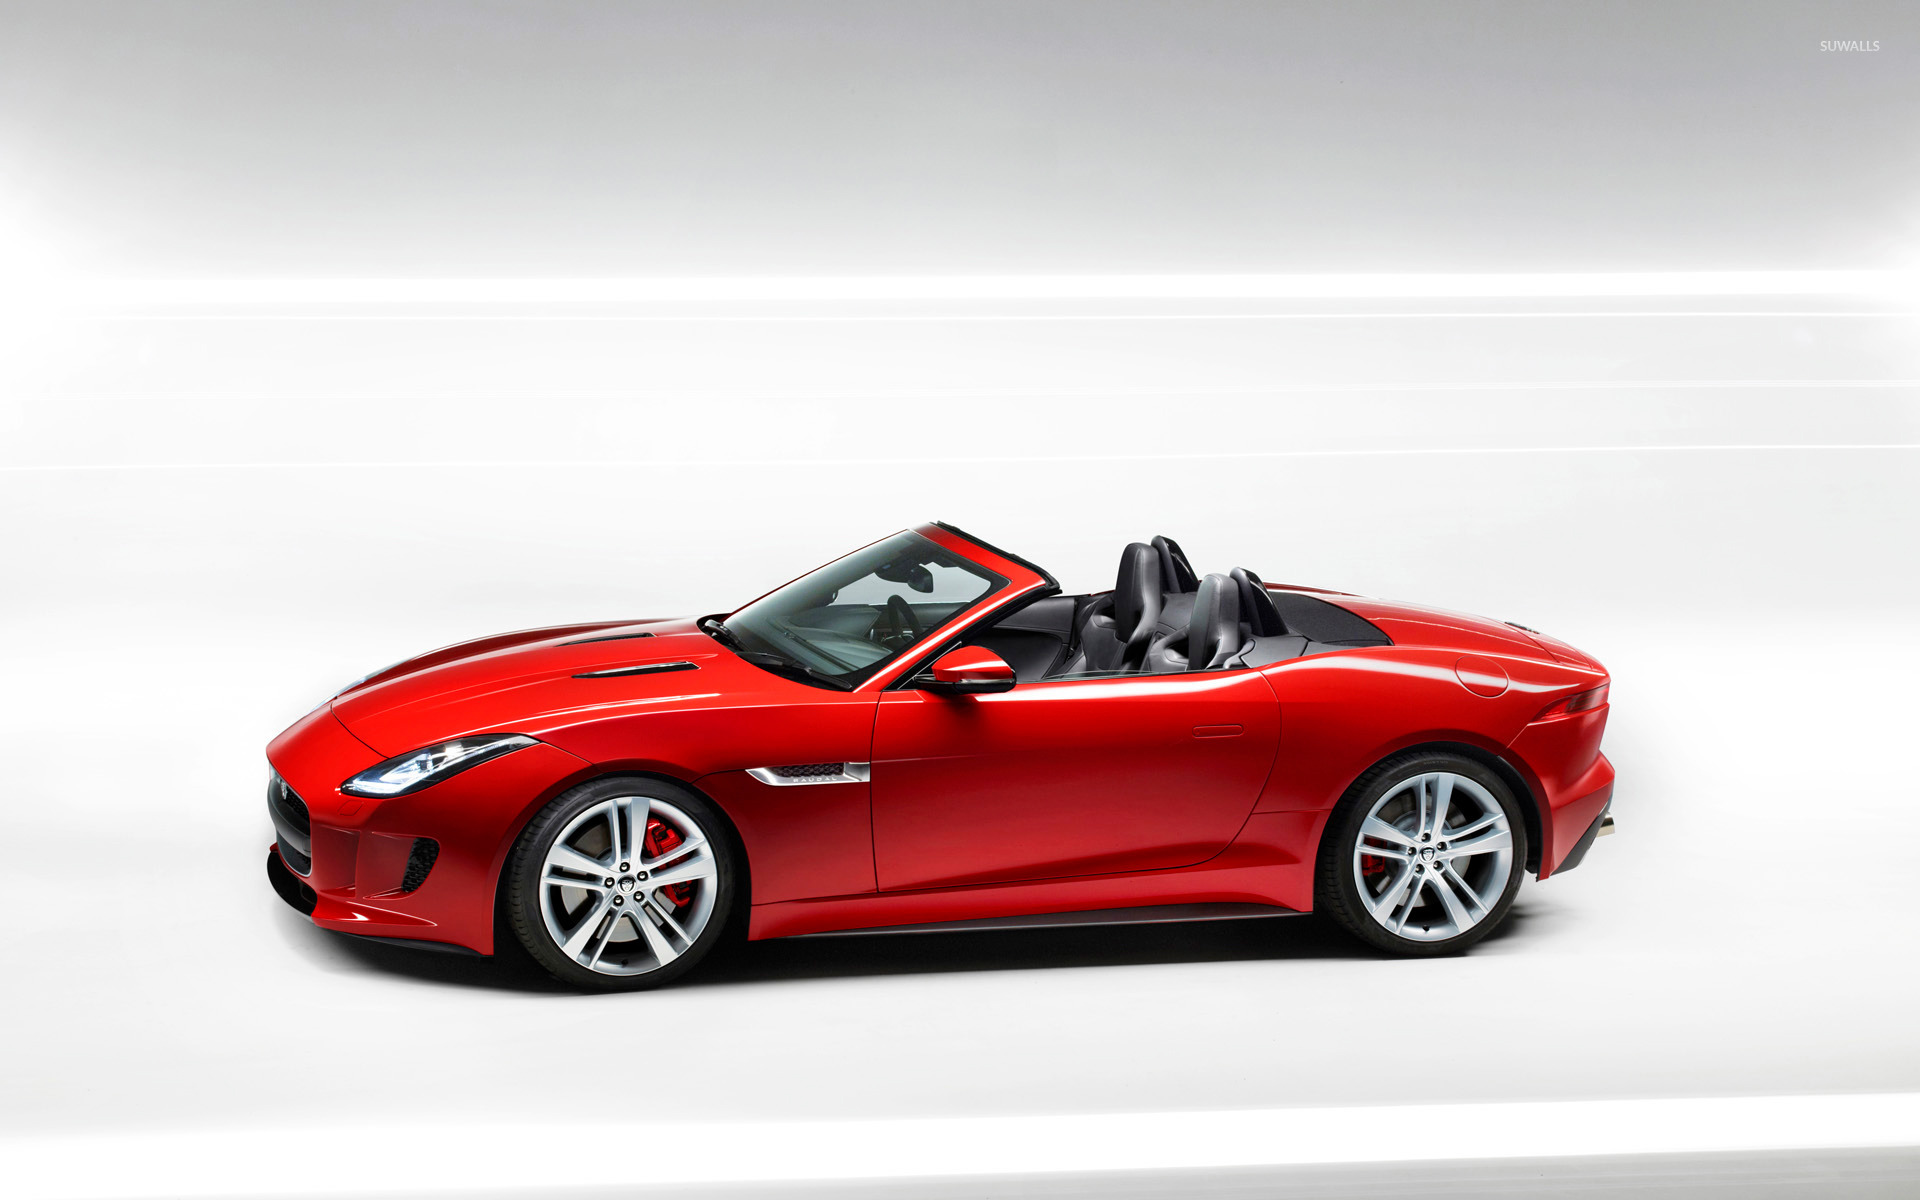 jaguar f type wallpaper car wallpapers 15296. Black Bedroom Furniture Sets. Home Design Ideas